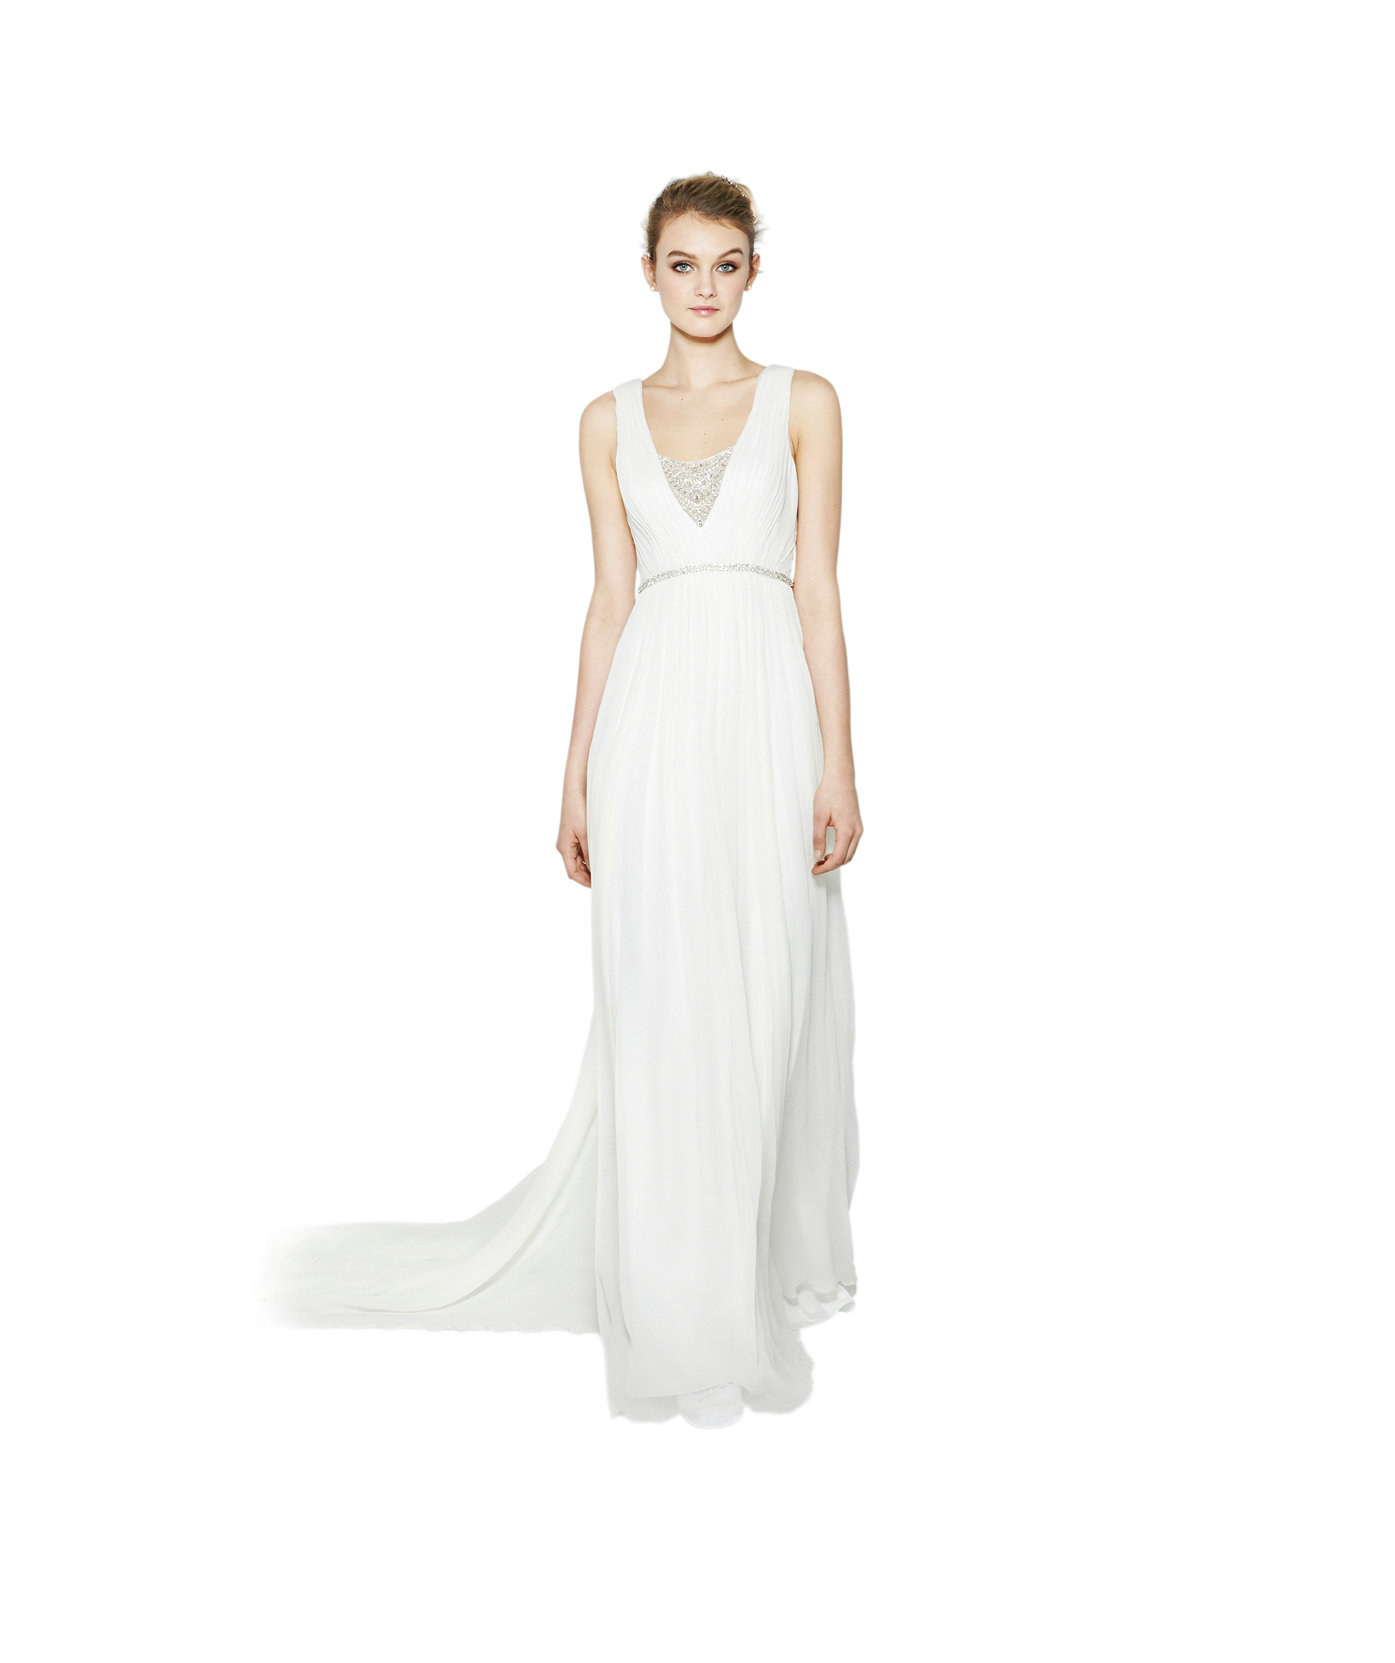 Nicole miller 39 millie 39 stunning off the rack wedding for Real simple wedding dresses